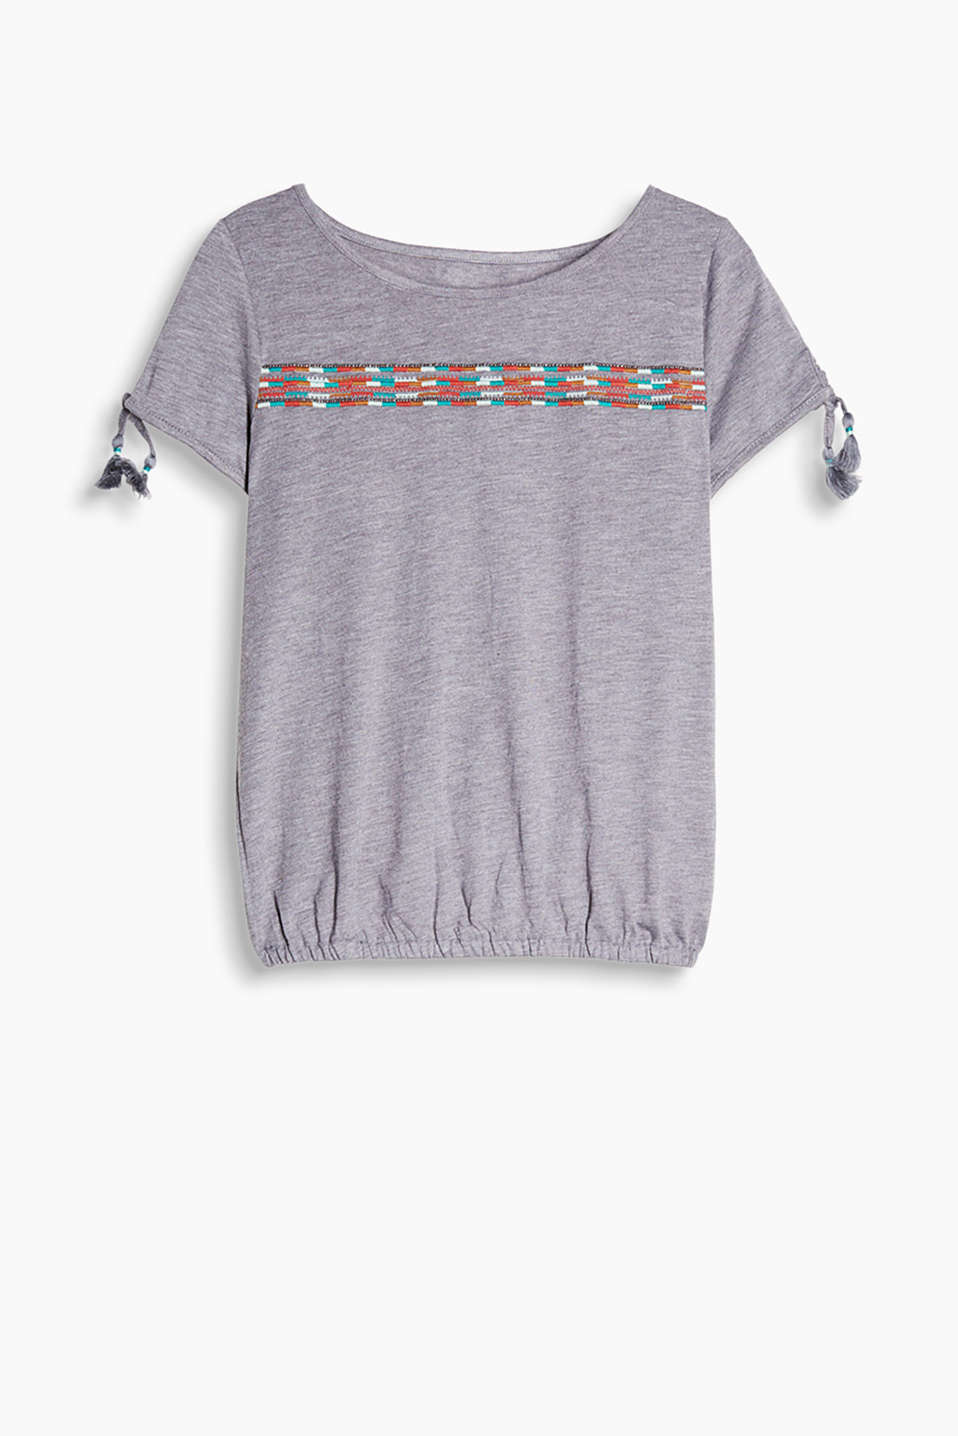 Fabric blend T-shirt with tribal embroidery, tassel ties on the sleeve ends and an elasticated hem